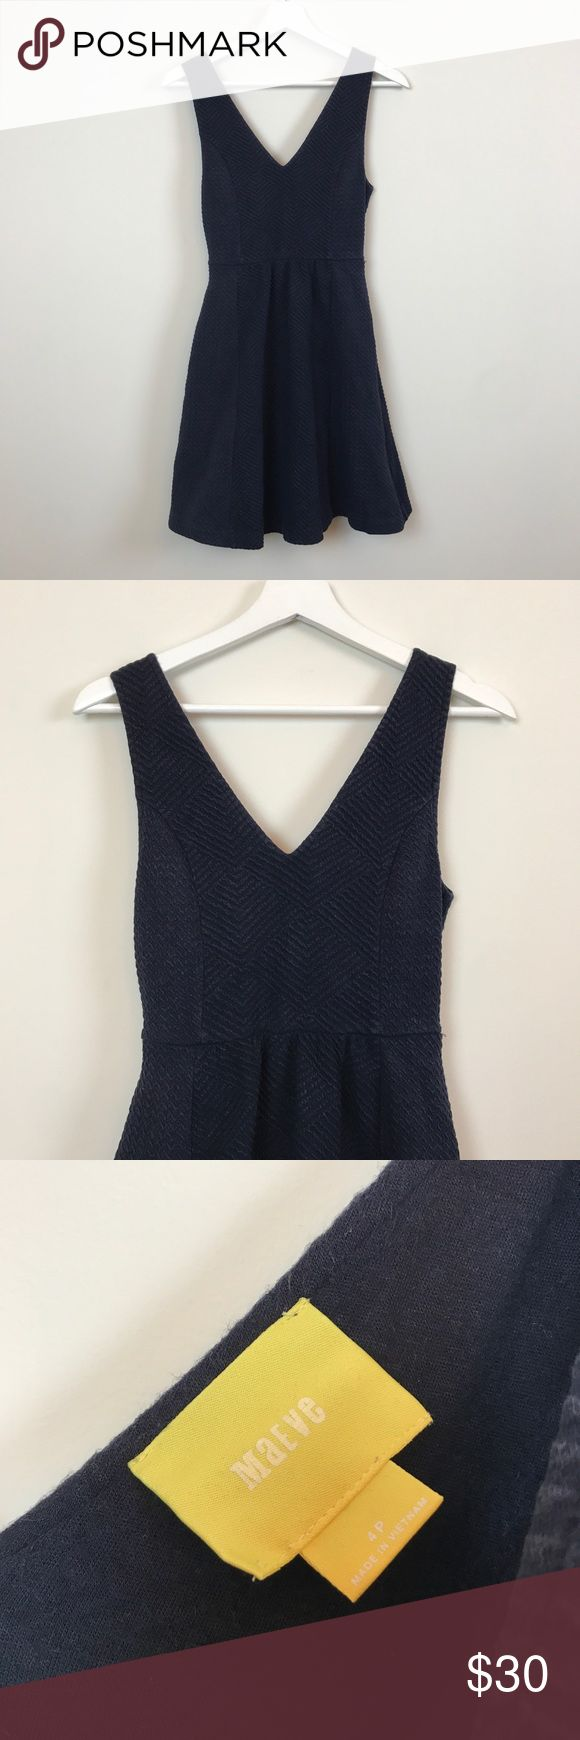 Anthropologie Maeve Navy Petite Dress Anthropologie Maeve Navy Dress. Size 4 petite. Has a slightly faded look but that's how I purchased. Super comfortable. Bust is 14 across, waist is 12.5 across, and length is 32.5. Open to offers and 30% off bundles! *F5 Anthropologie Dresses